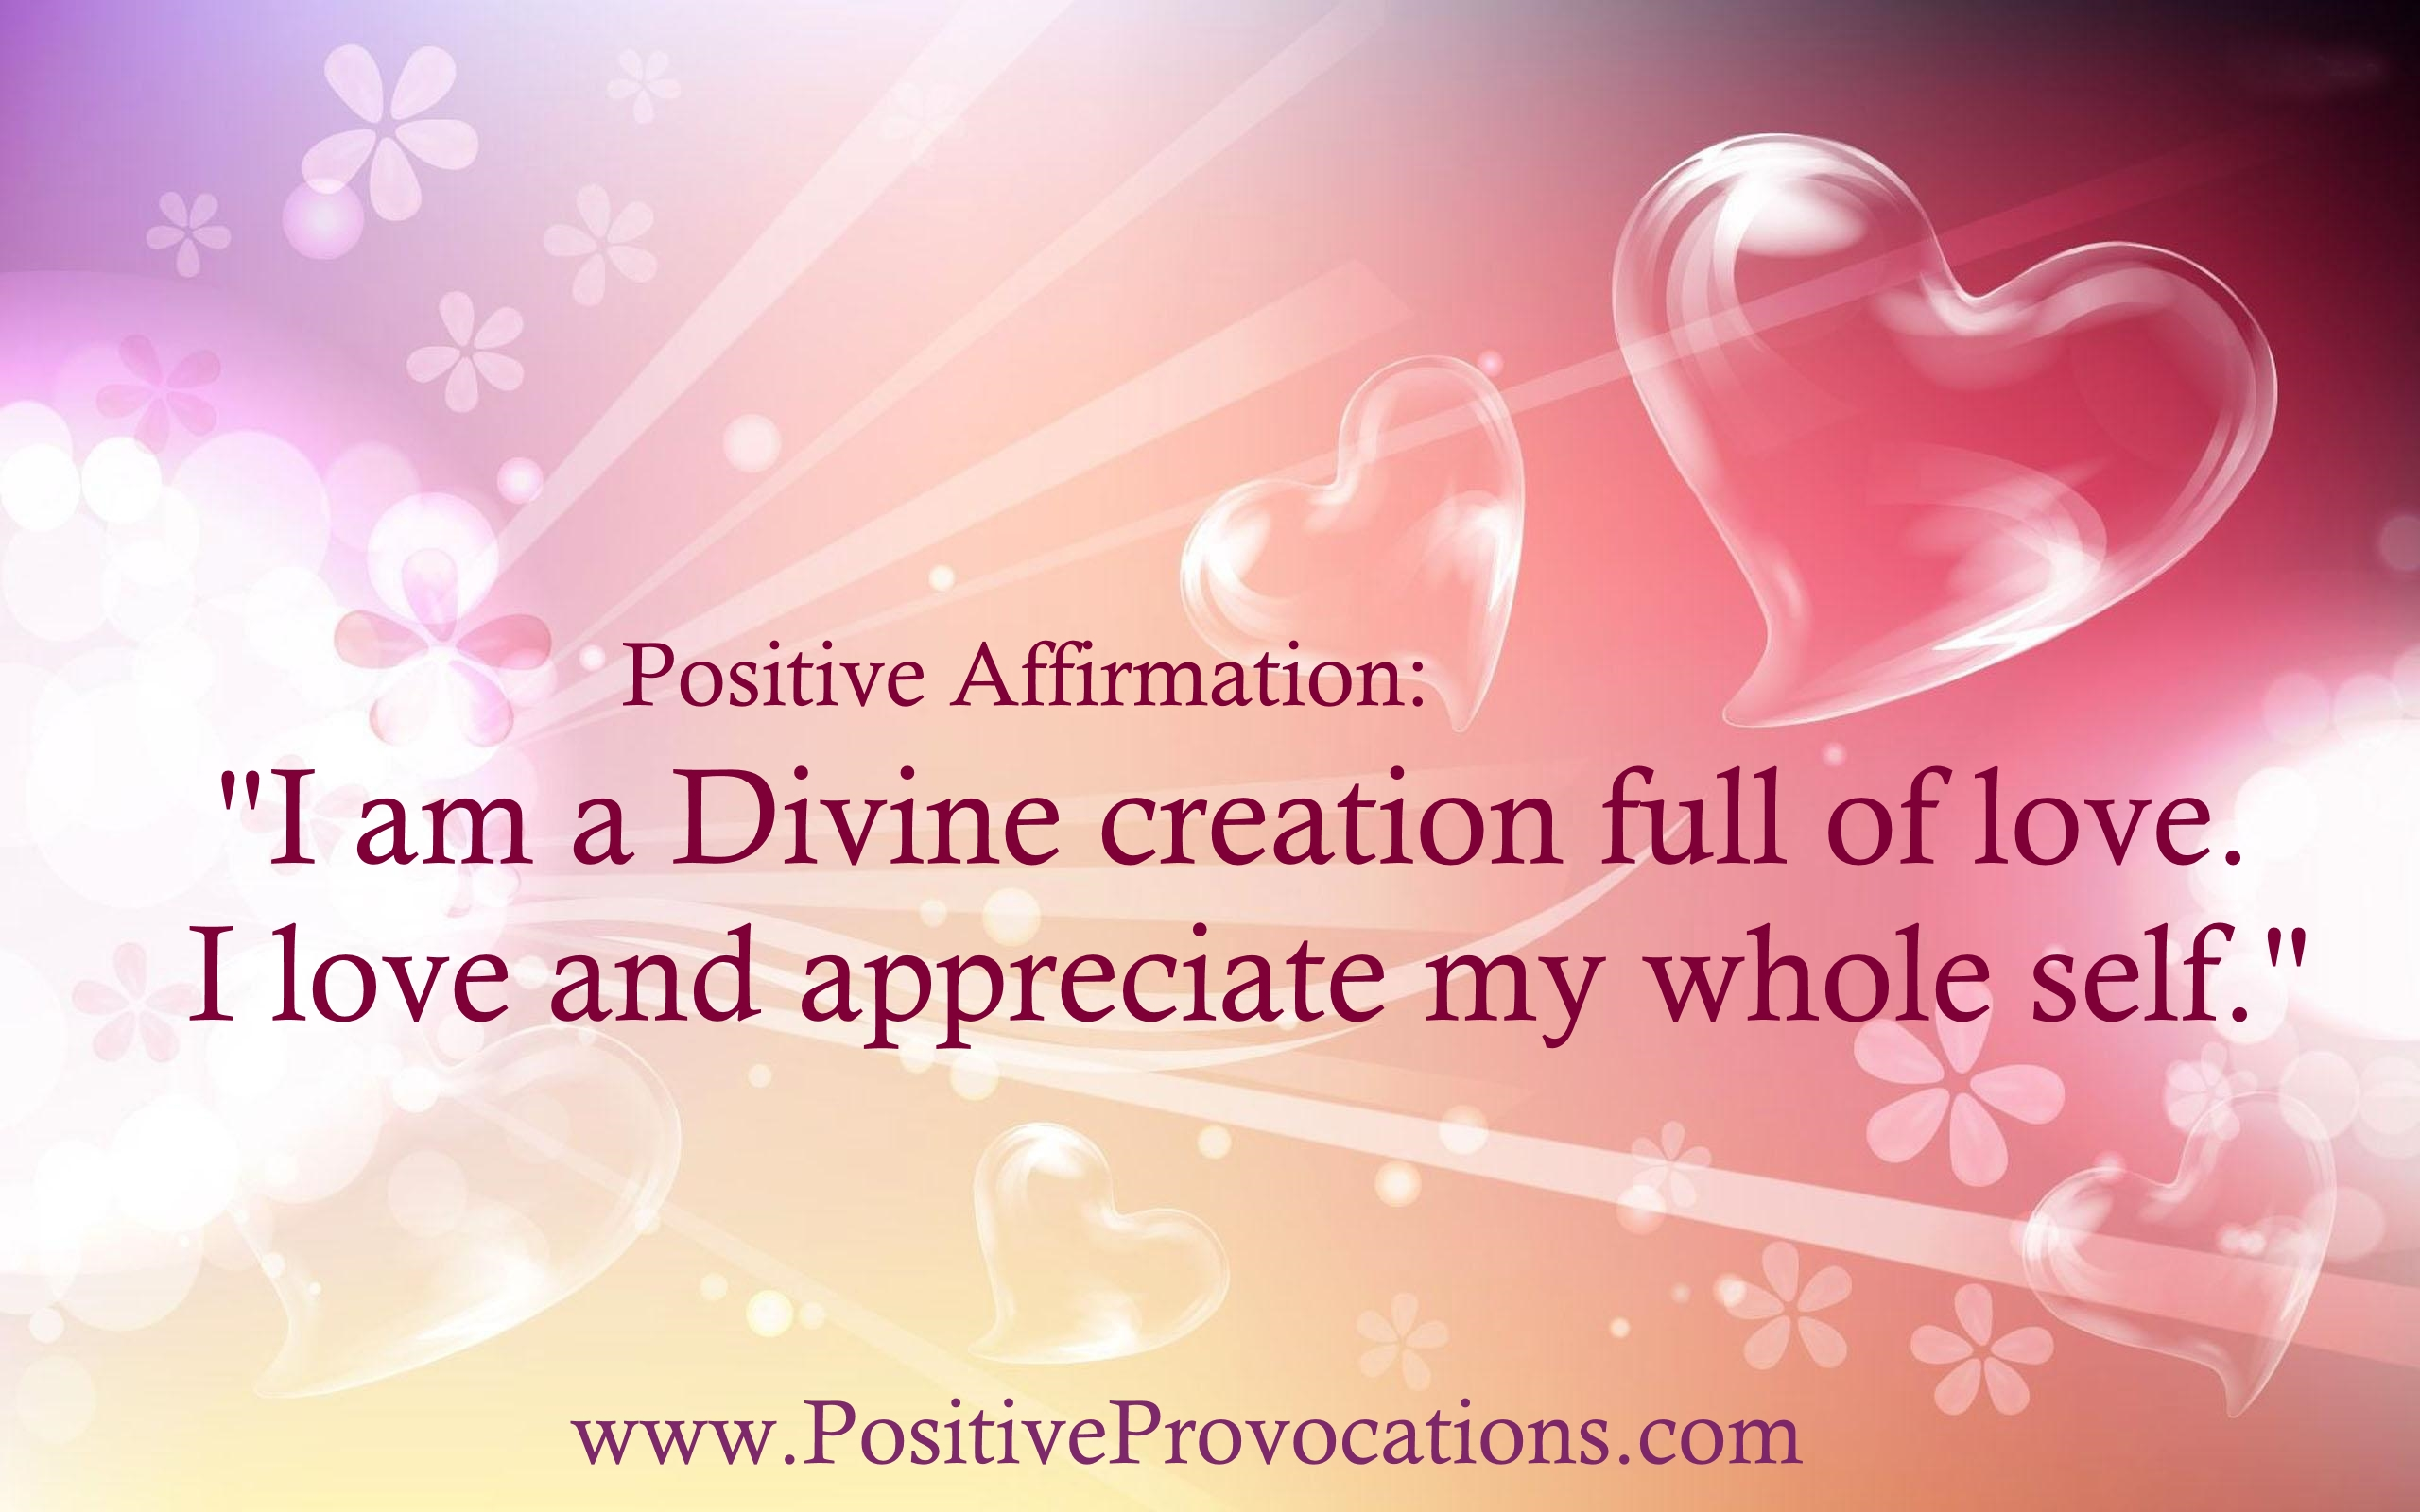 positive-affirmation-i-am-a-divine-creation-full-of-love-i-love-and-appreciate-my-whole-self-1.jpg